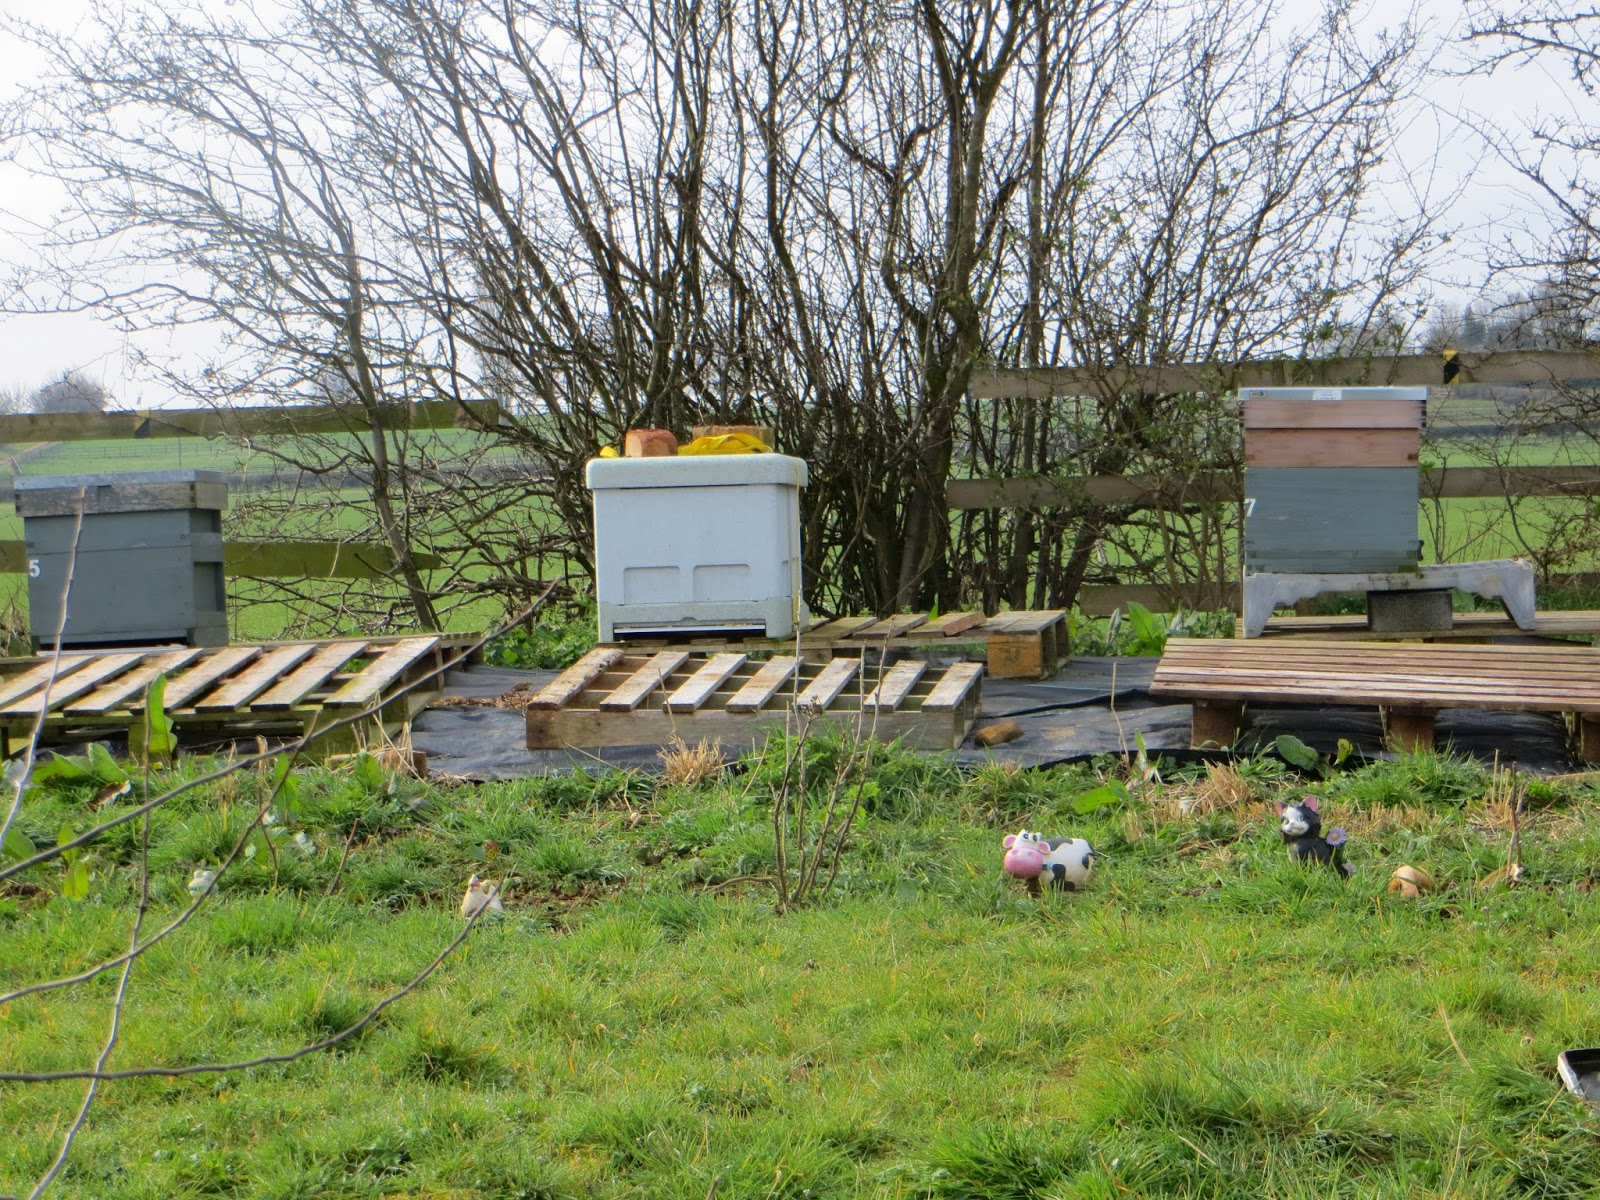 Excellent view point of the hives.